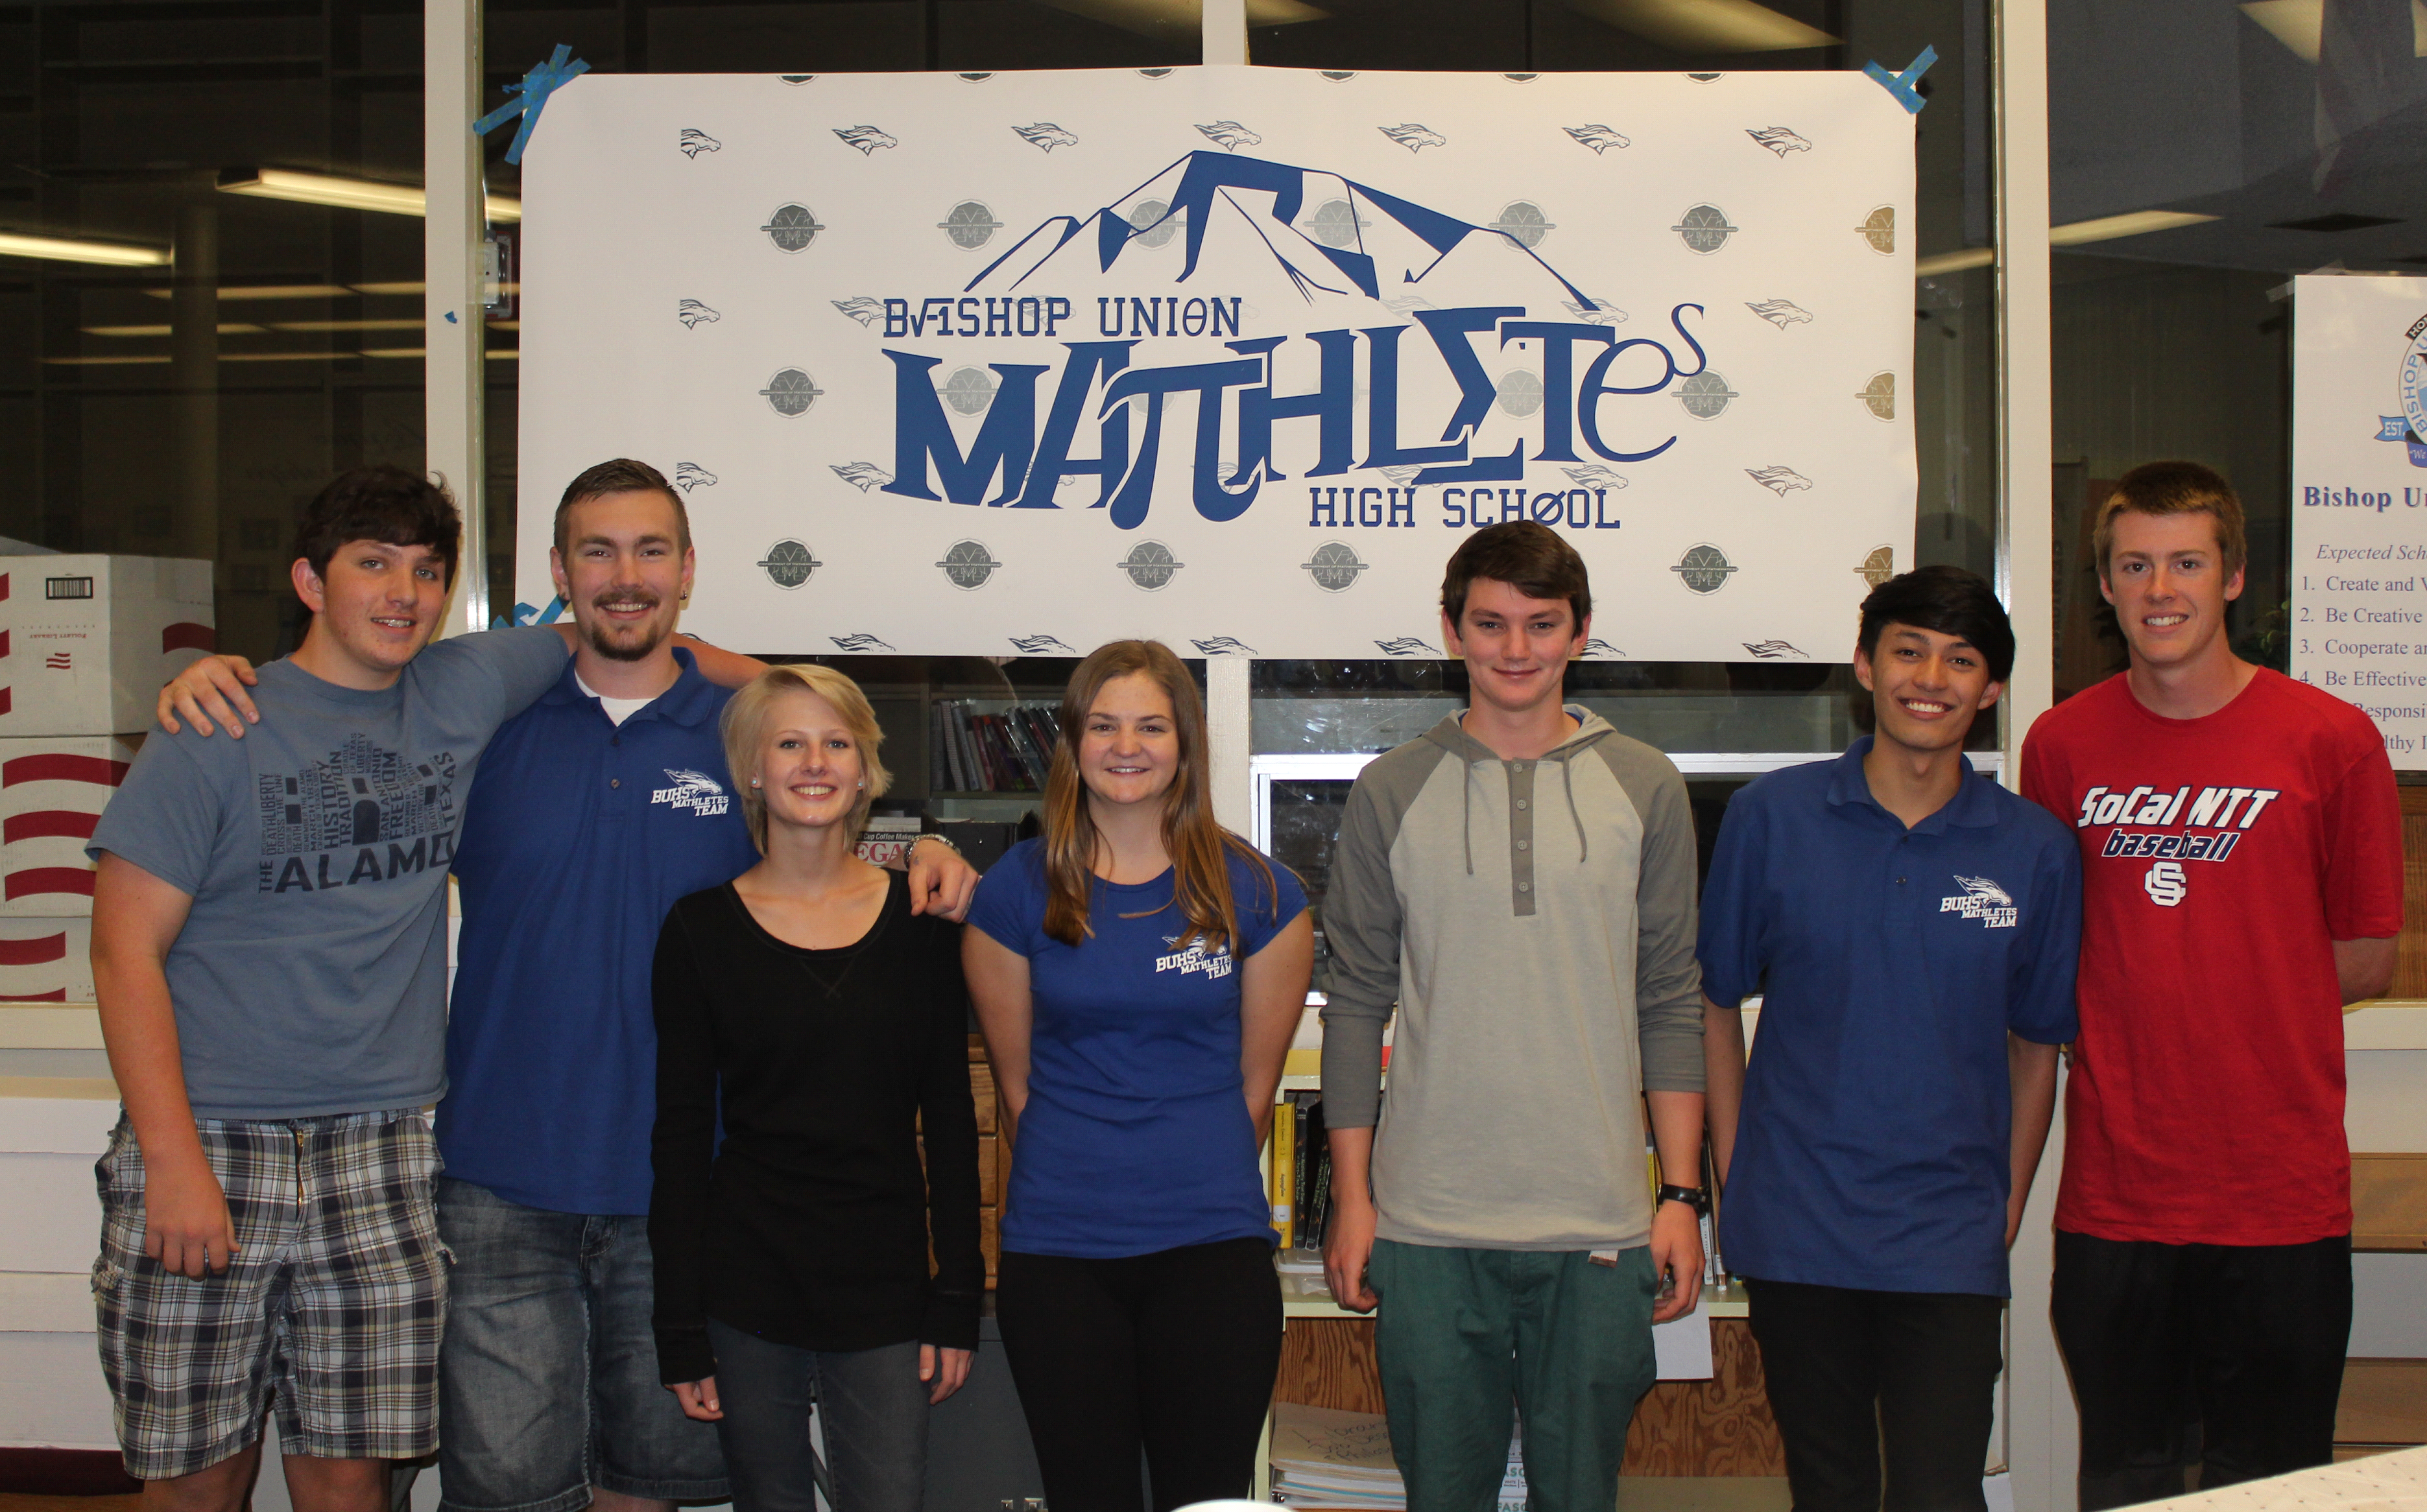 Bishop Mathletes gather before the April 29, 2015 Mathletes Meet held at BUHS. Left to right: Joey Harvey, Robby Moore, Hannah Murray, Jamie Shultz, Stephen Stickells, Thomas Sills, and Colton Riesen.